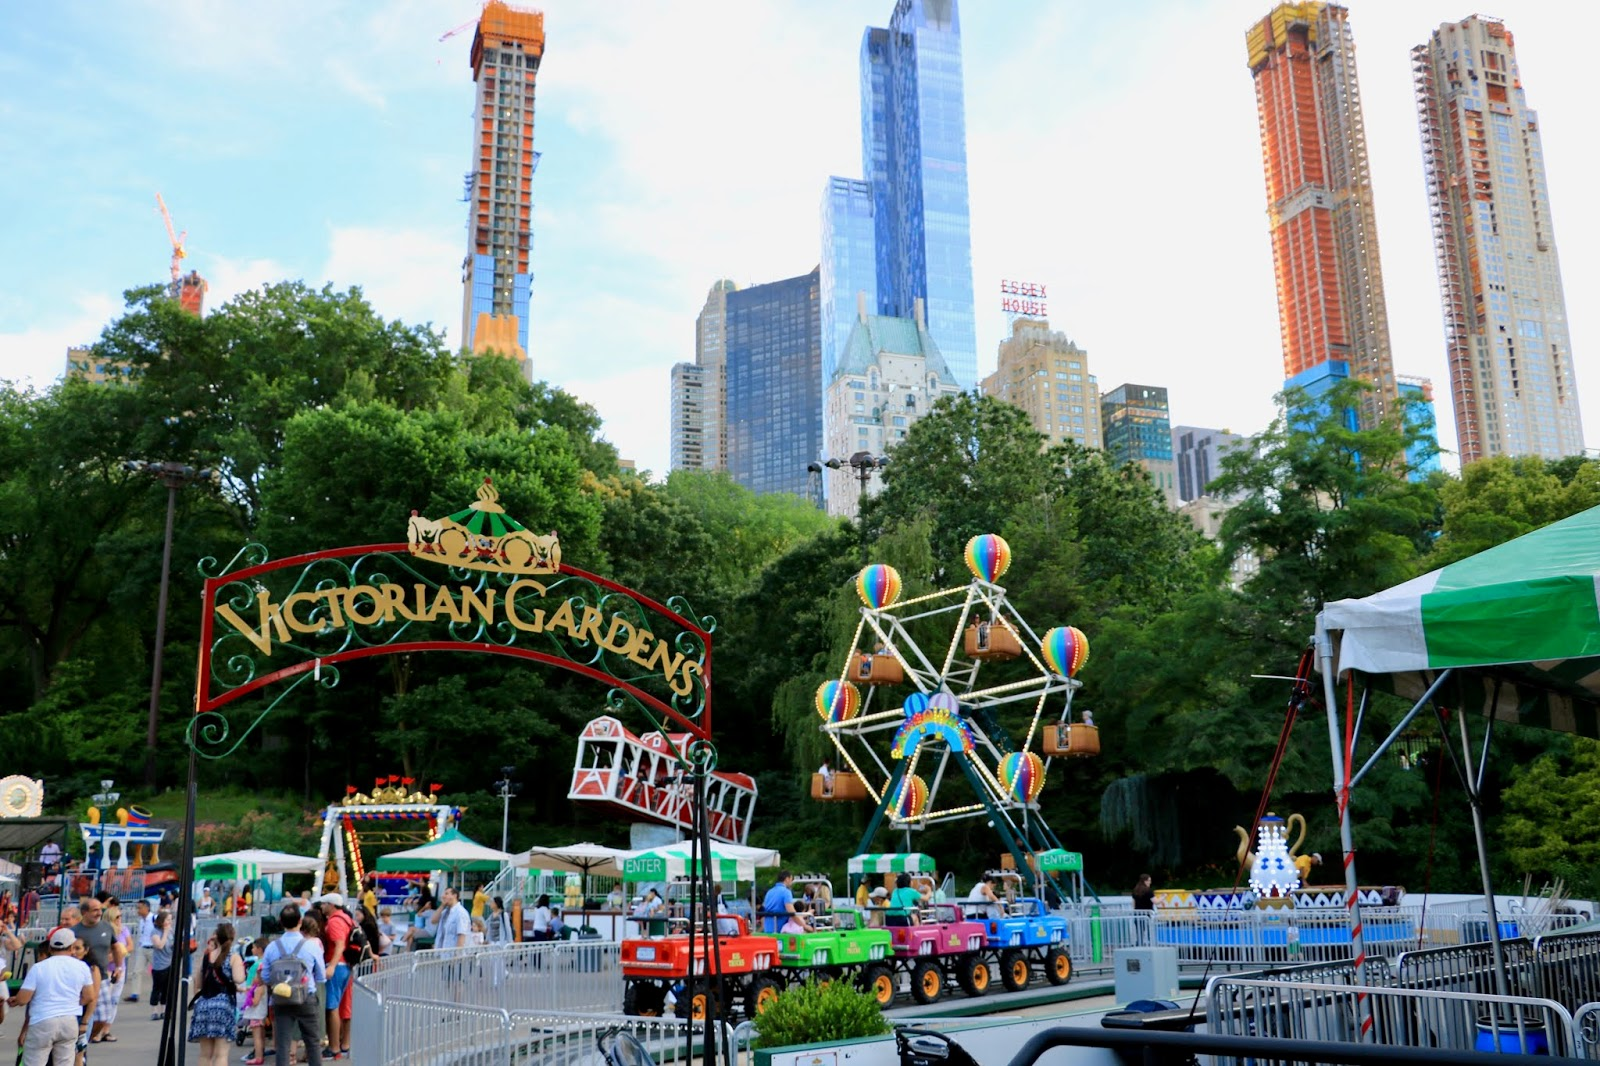 Victorian Gardens carnival in Central Park NYC